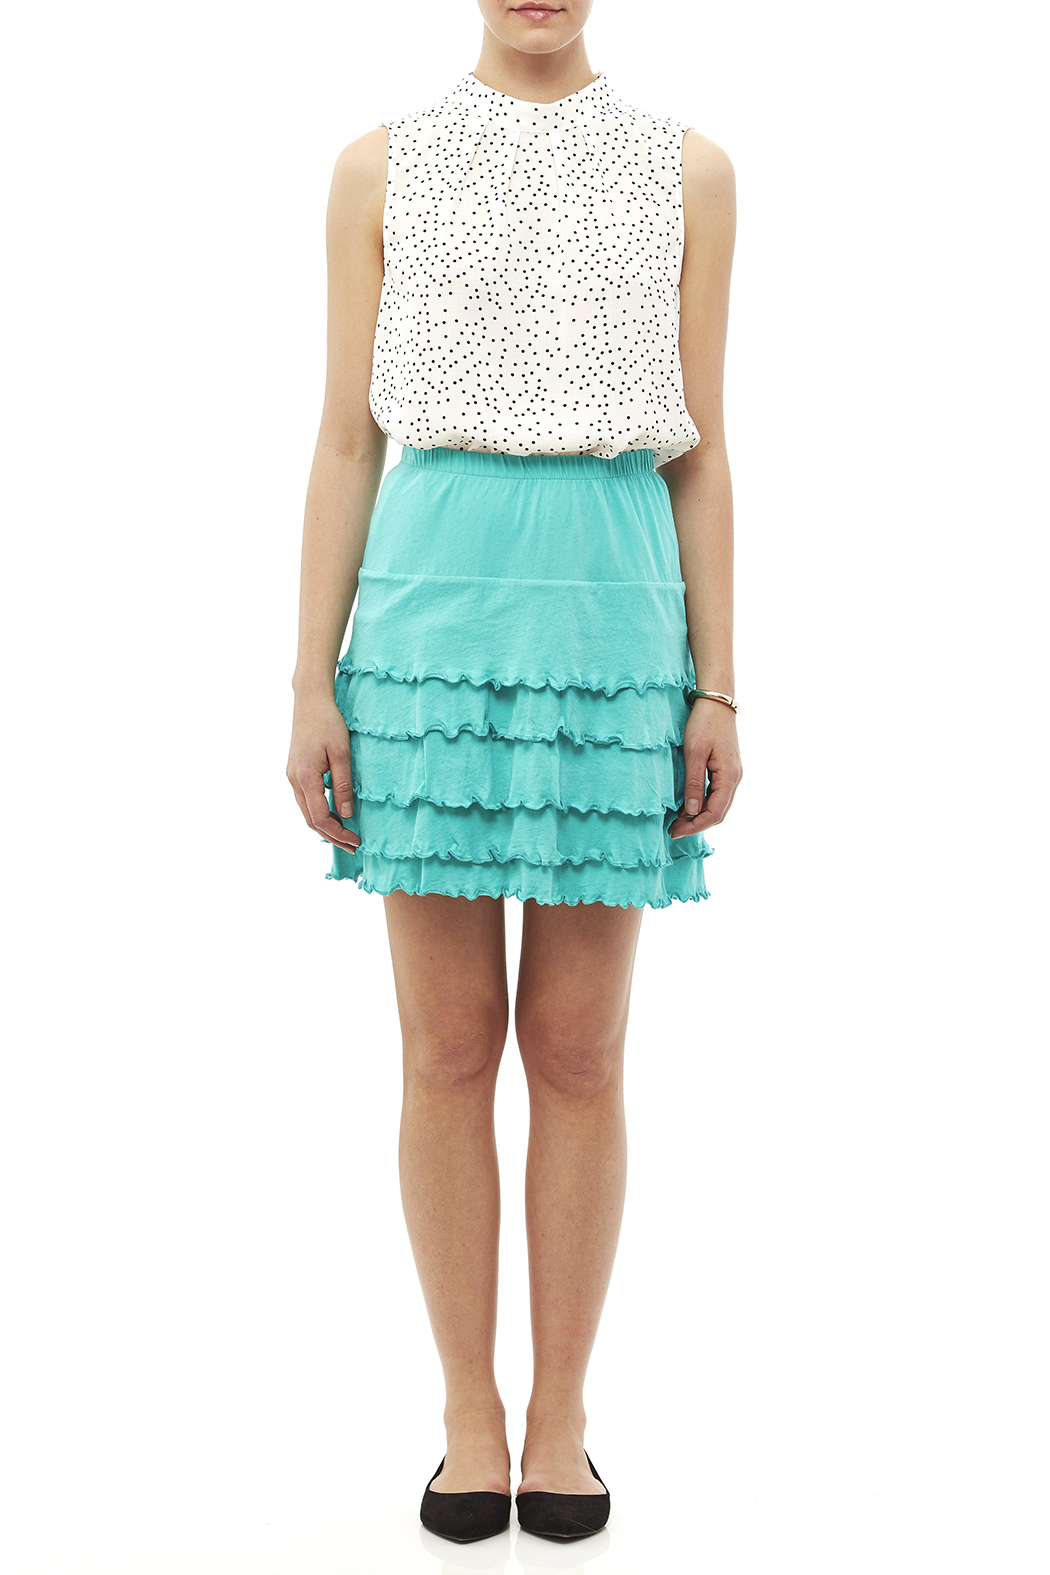 Nomadic Traders Teal Ruffle Skirt - Front Full Image